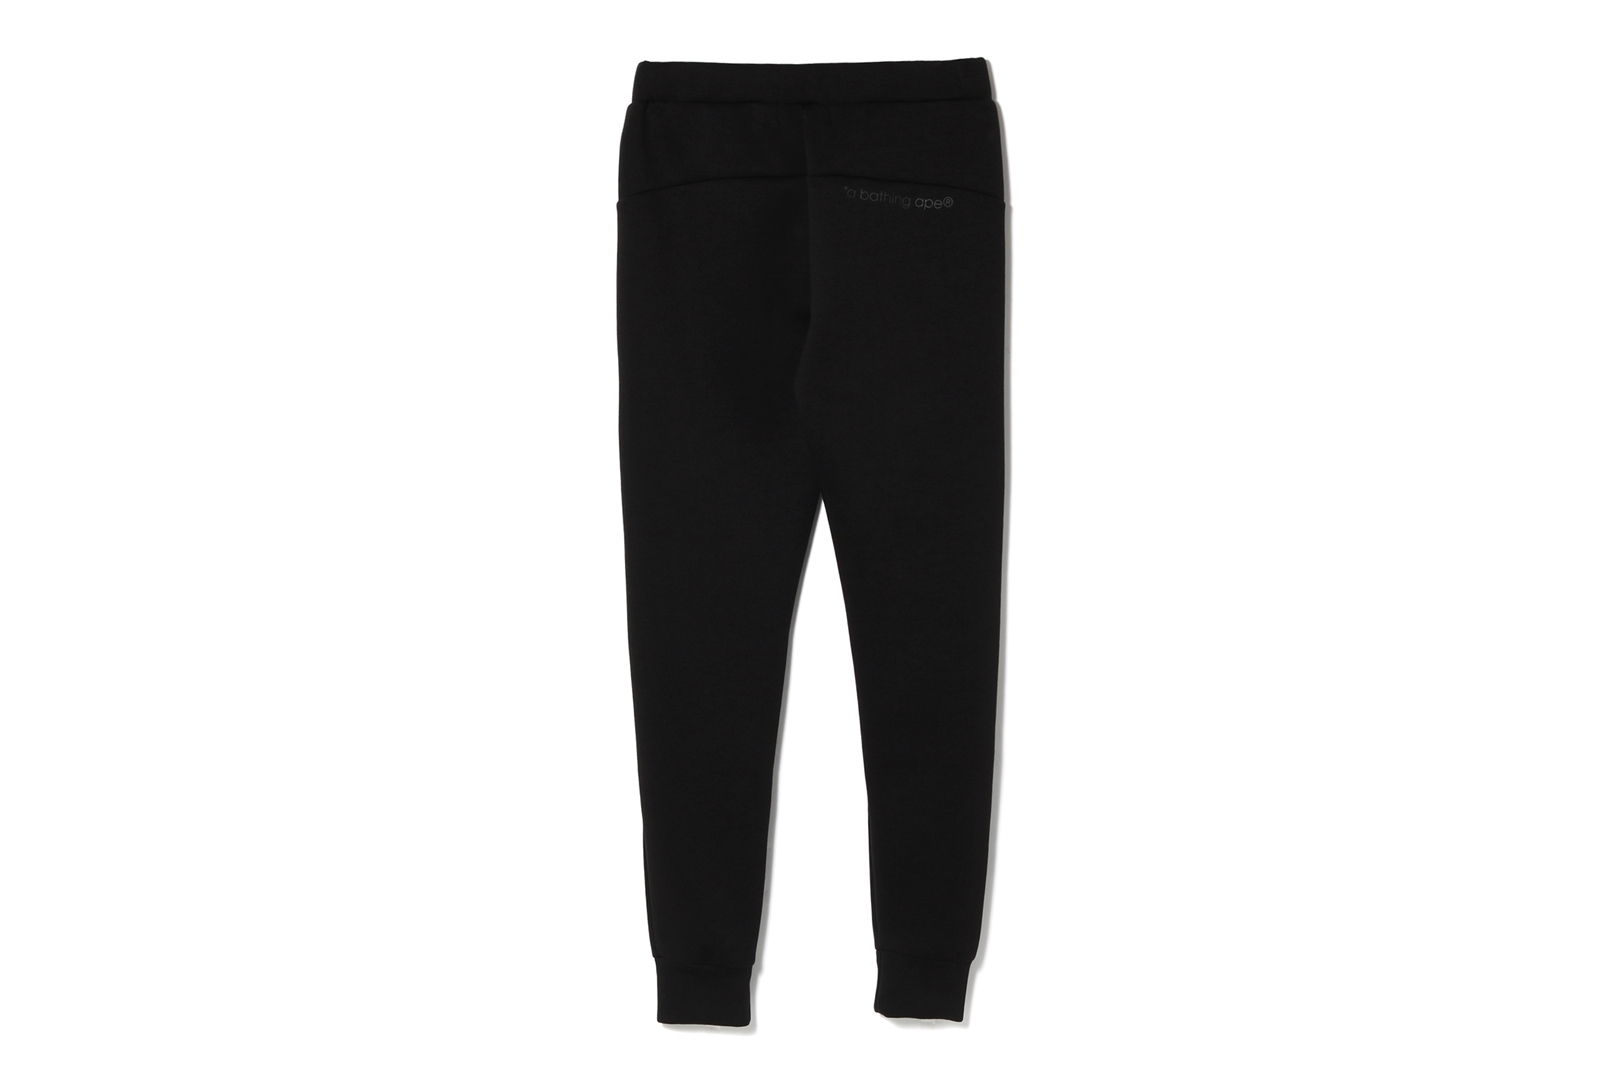 APE HEAD ONEPOINT SLIM SWEAT PANTS_a0174495_17165270.jpg